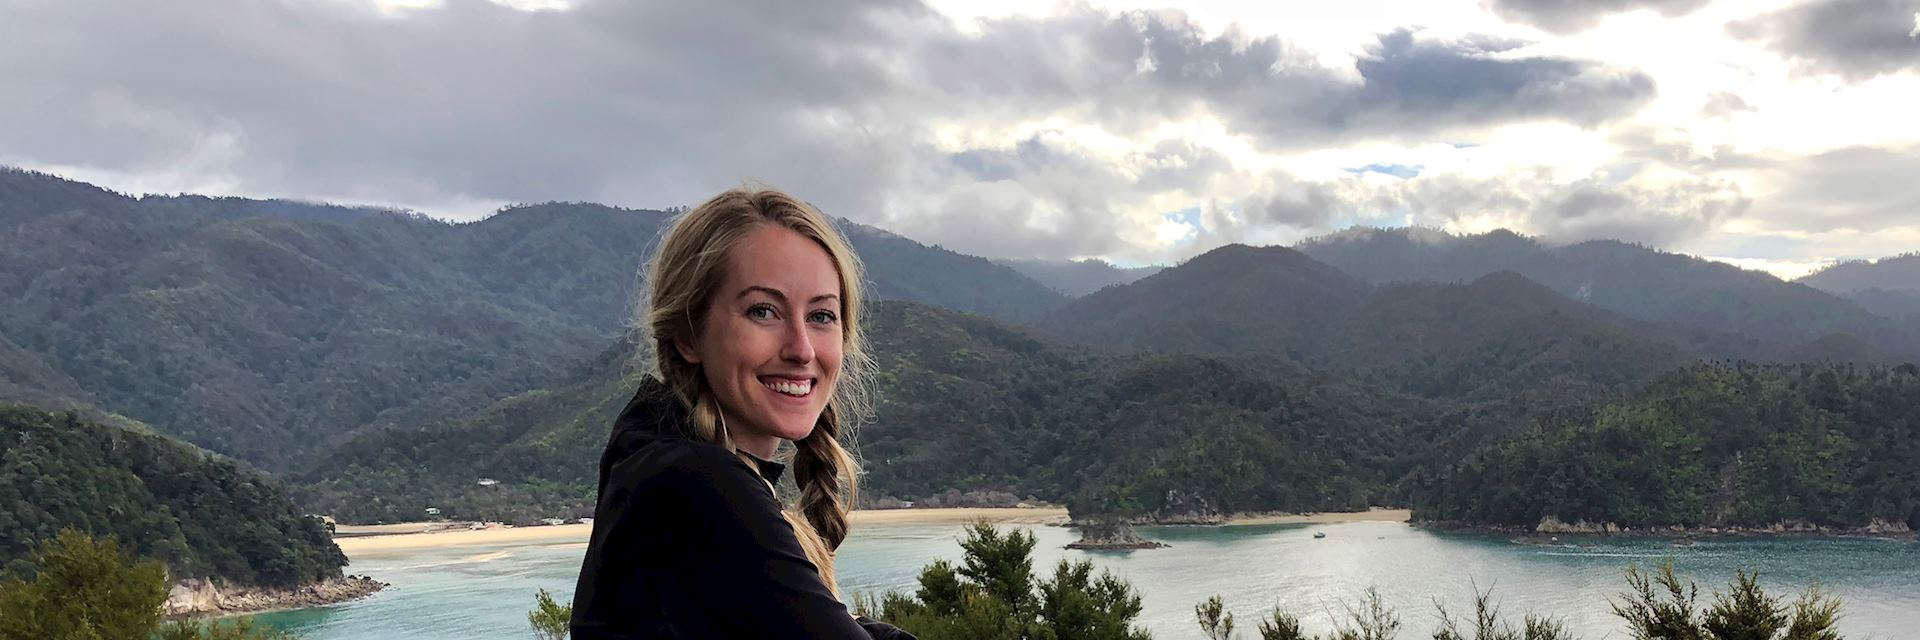 Mary in Abel Tasman National Park, New Zealand